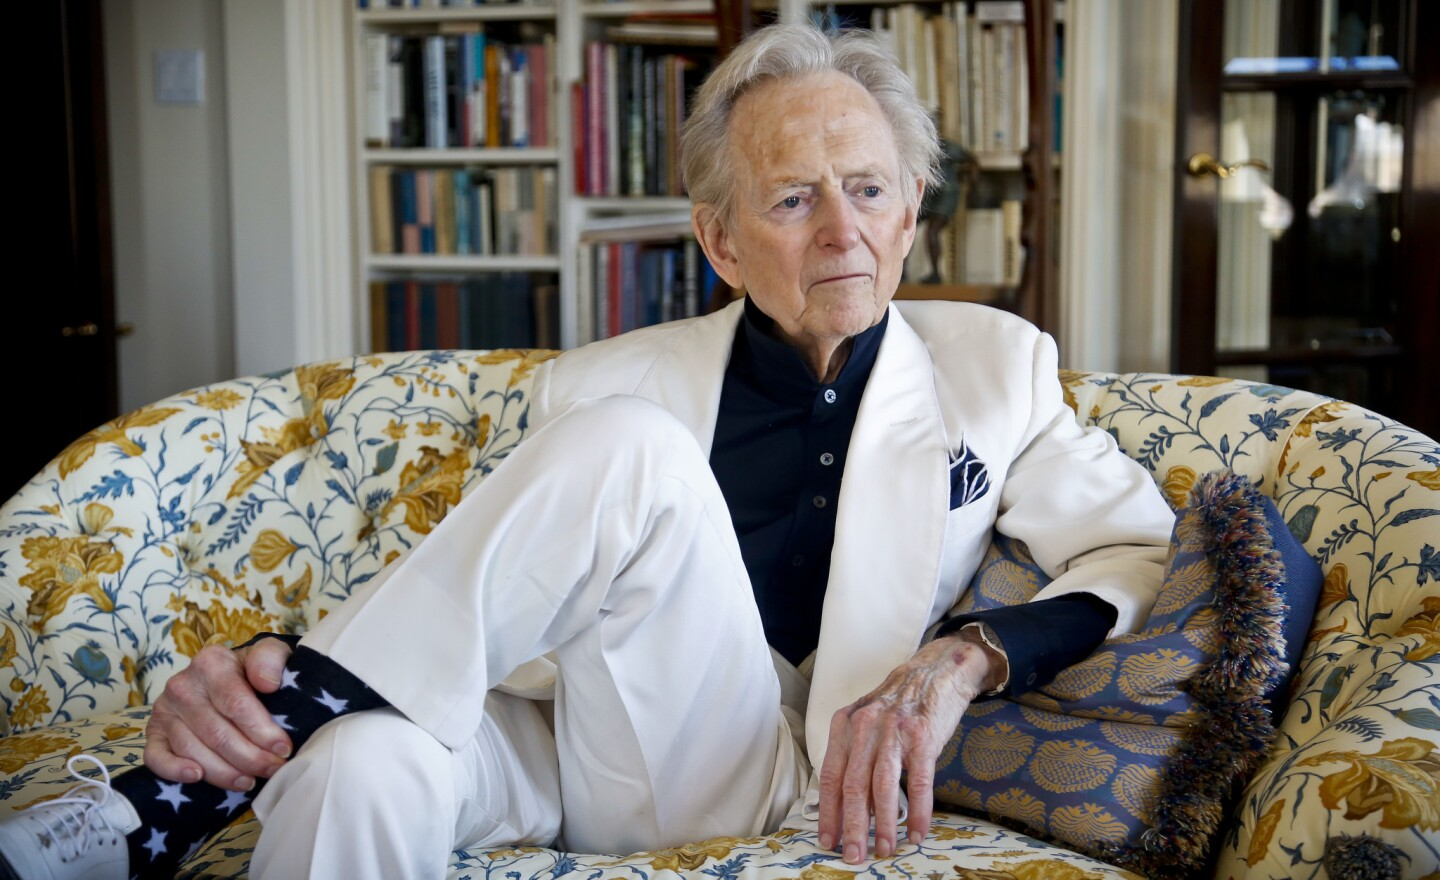 """Author and journalist Tom Wolfe is interviewed in July 2016 in his living room in New York about his book """"The Kingdom of Speech."""" Wolfe has died at age 87."""